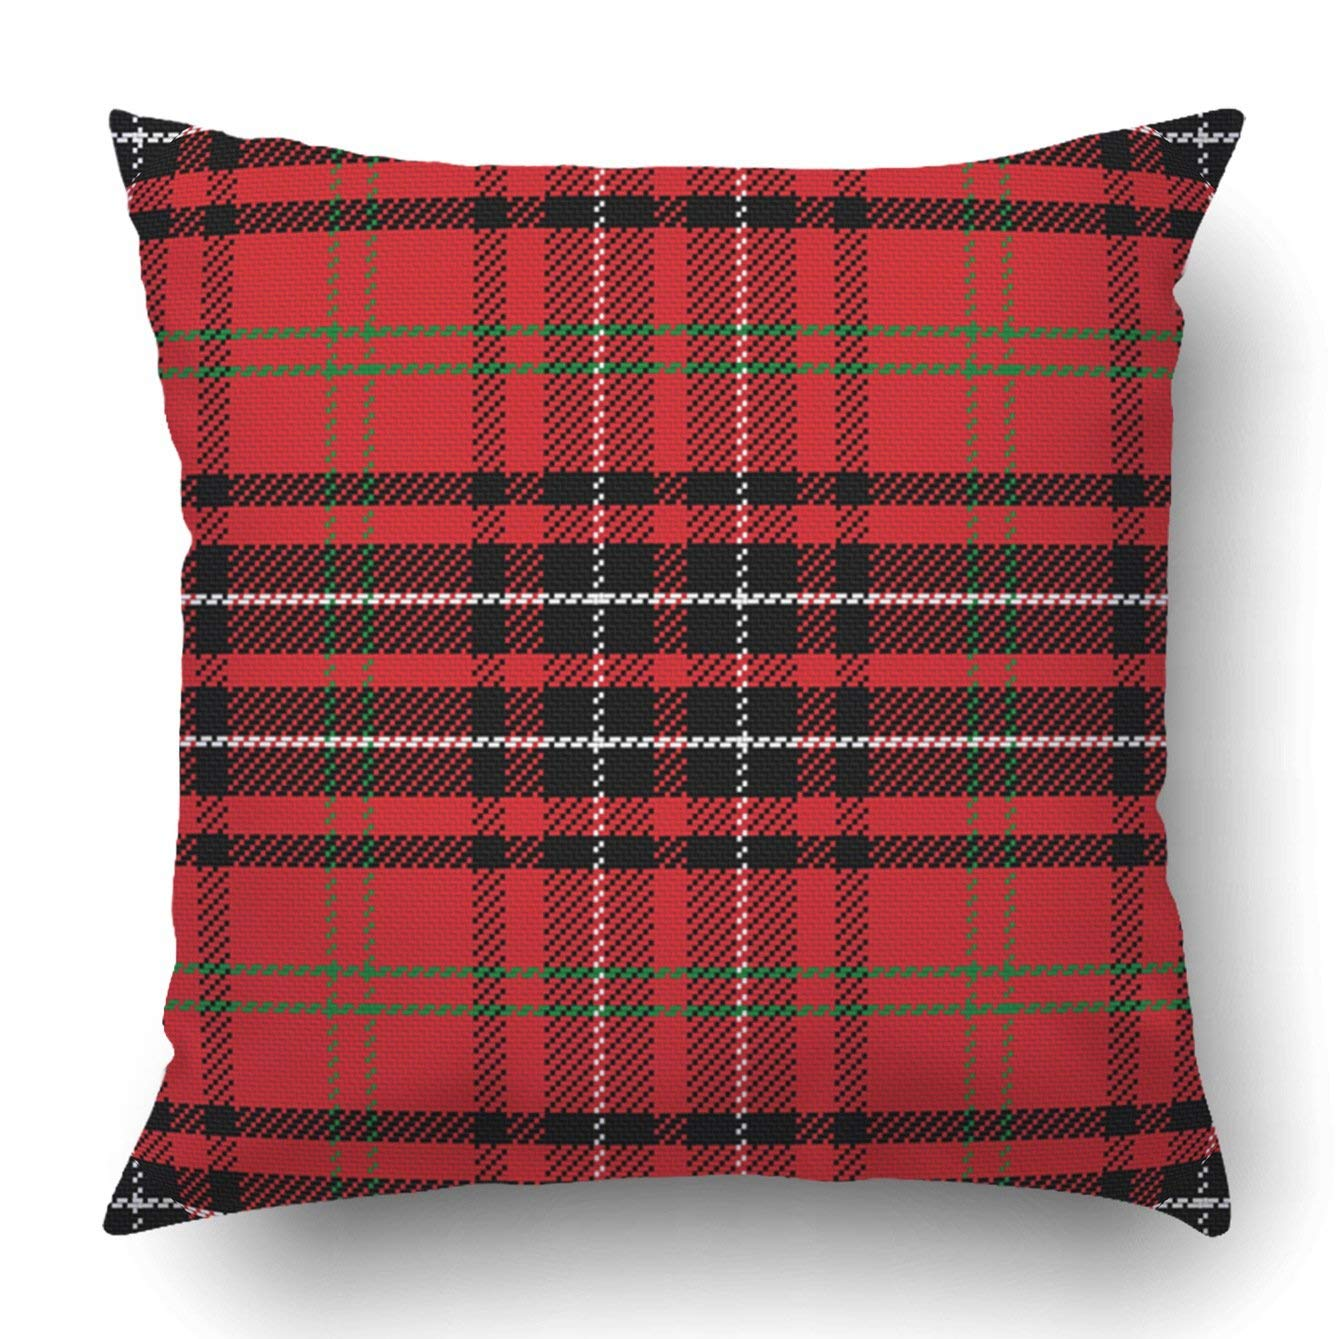 WOPOP vector pattern Scottish tartan red and green blue and yellow Pillowcase Throw Pillow Cover Case 18x18 inches